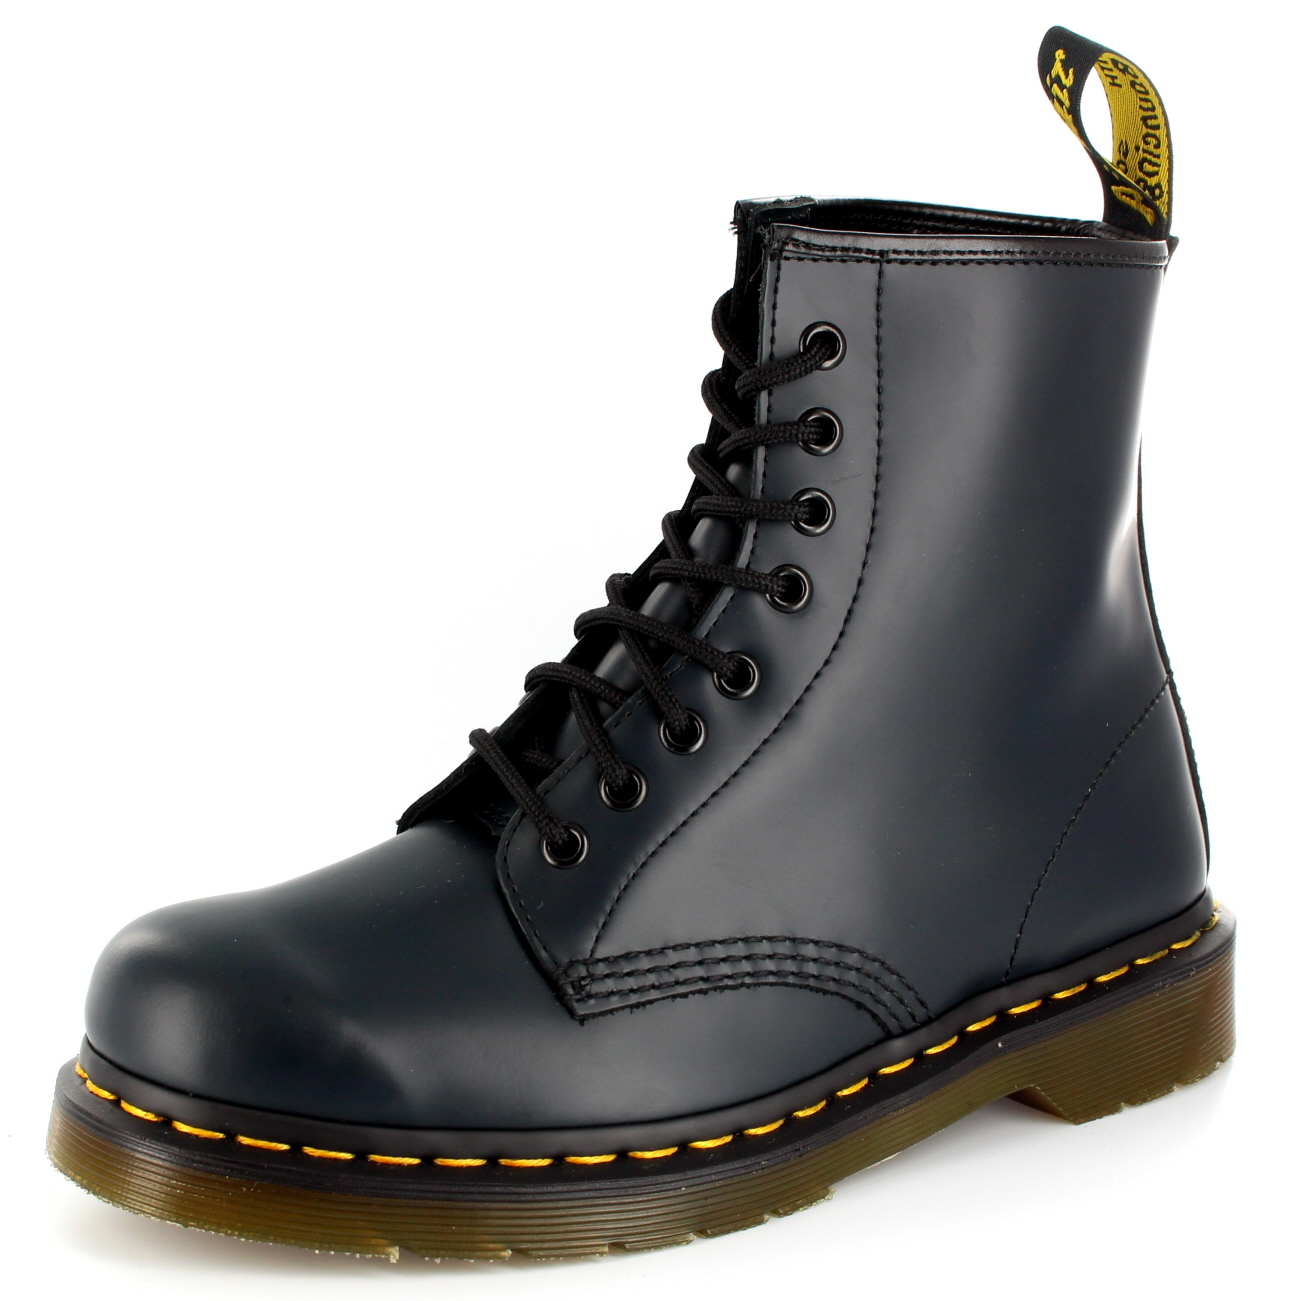 Mens Dr. Martens 1460Z 8 Eyelet Eyelet Eyelet Smooth Leather Lace Up Military Boot All Sizes 742932